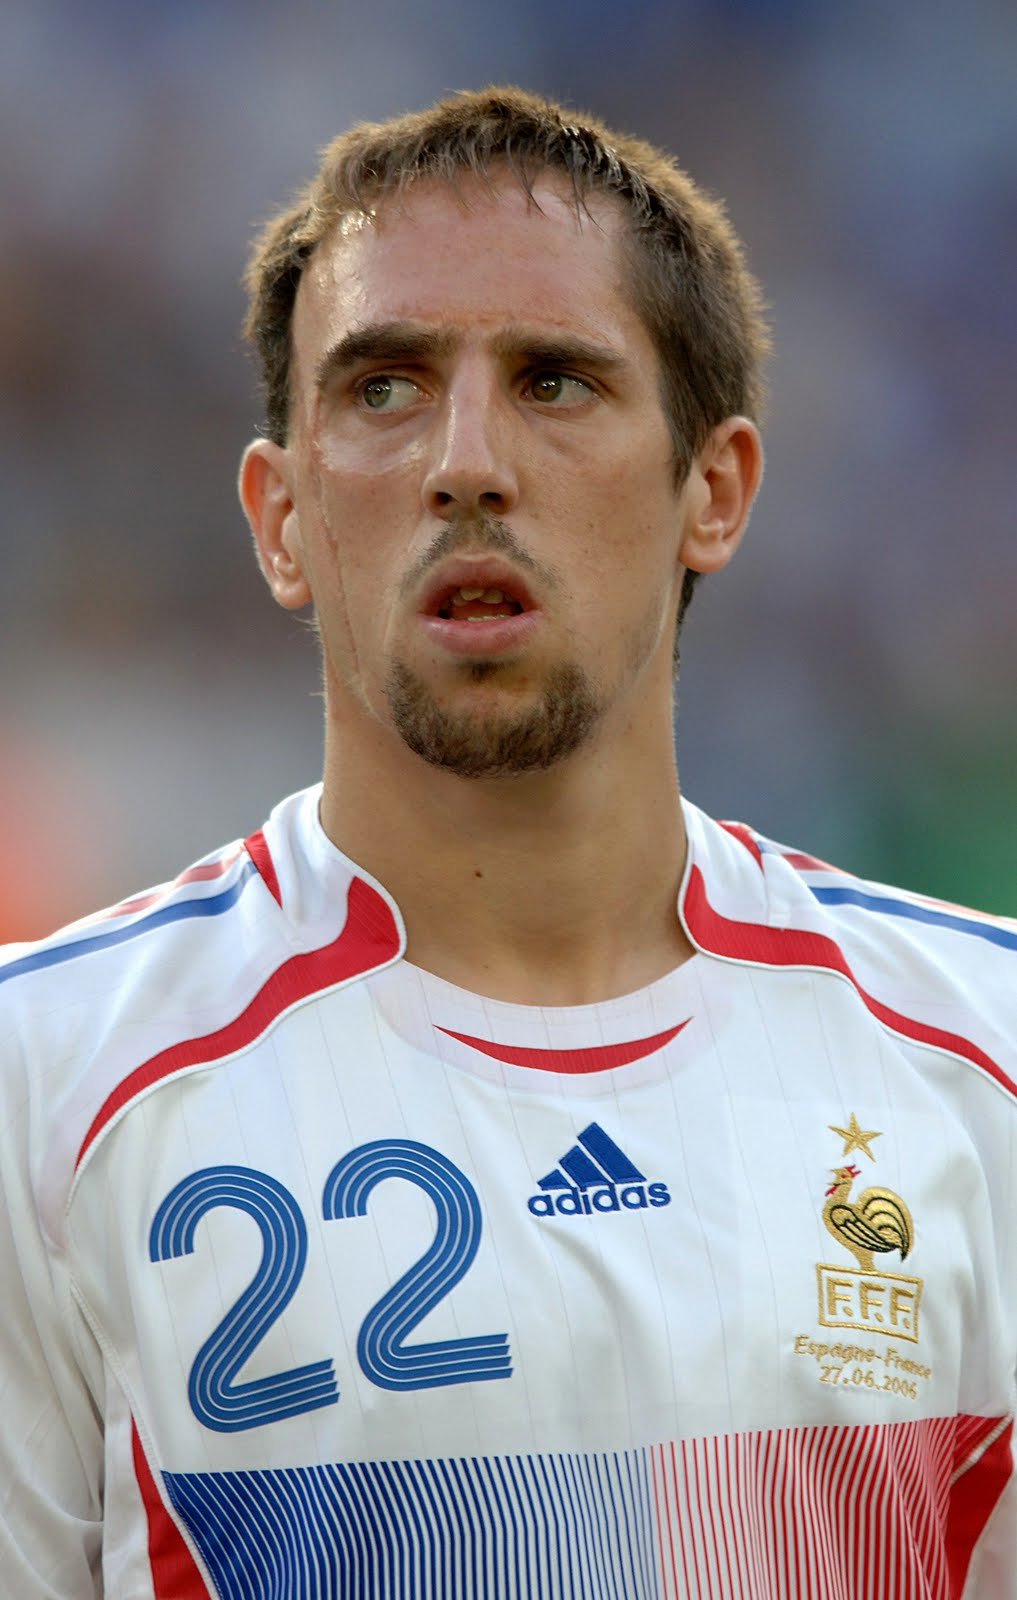 Football Players: Franck Ribéry